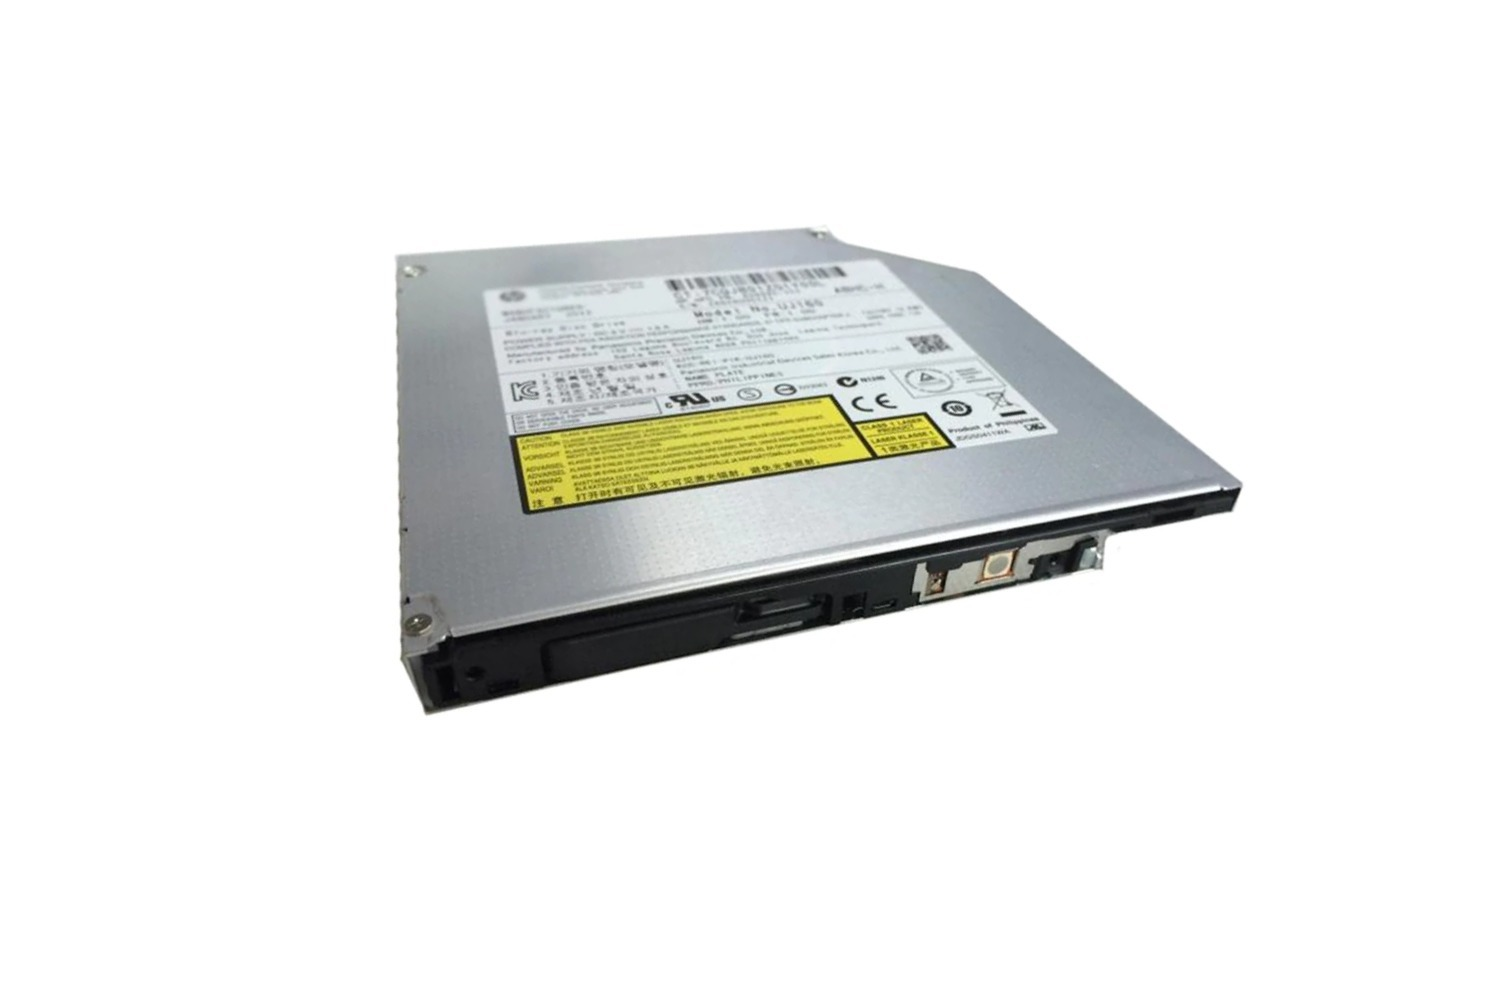 Nagrywarka do laptopa Toshiba DVD-RW TS-U633